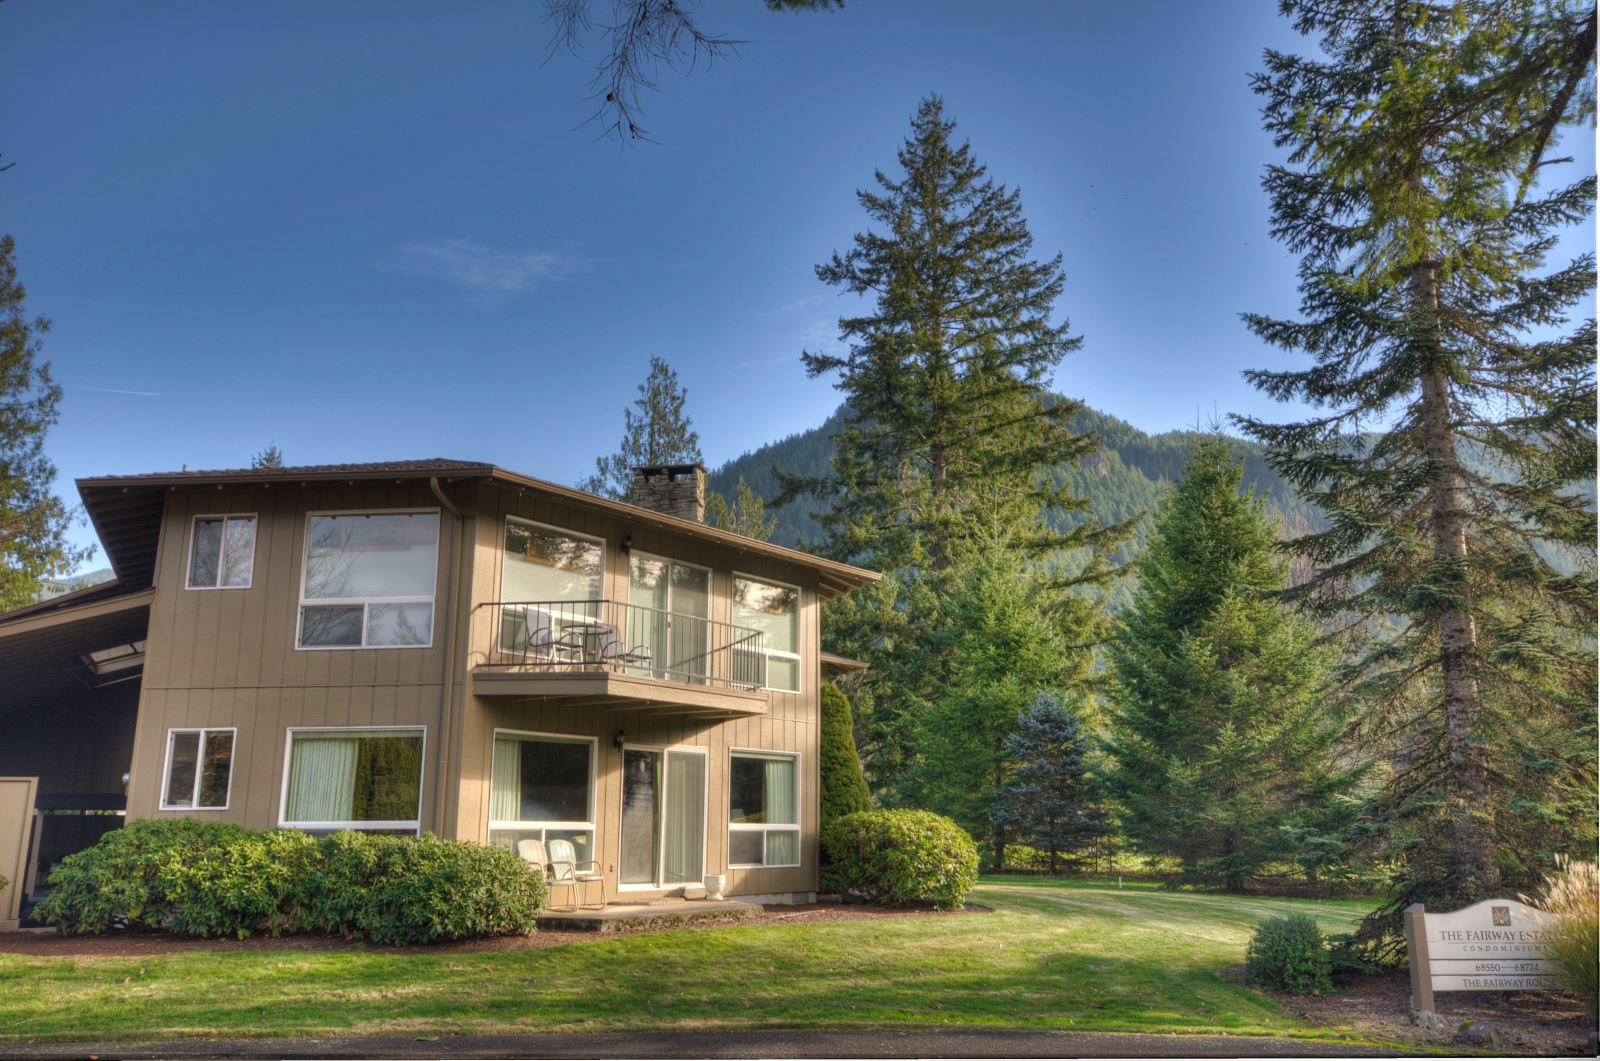 Fairway Estates Condo at the Mt. Hood Oregon Resort